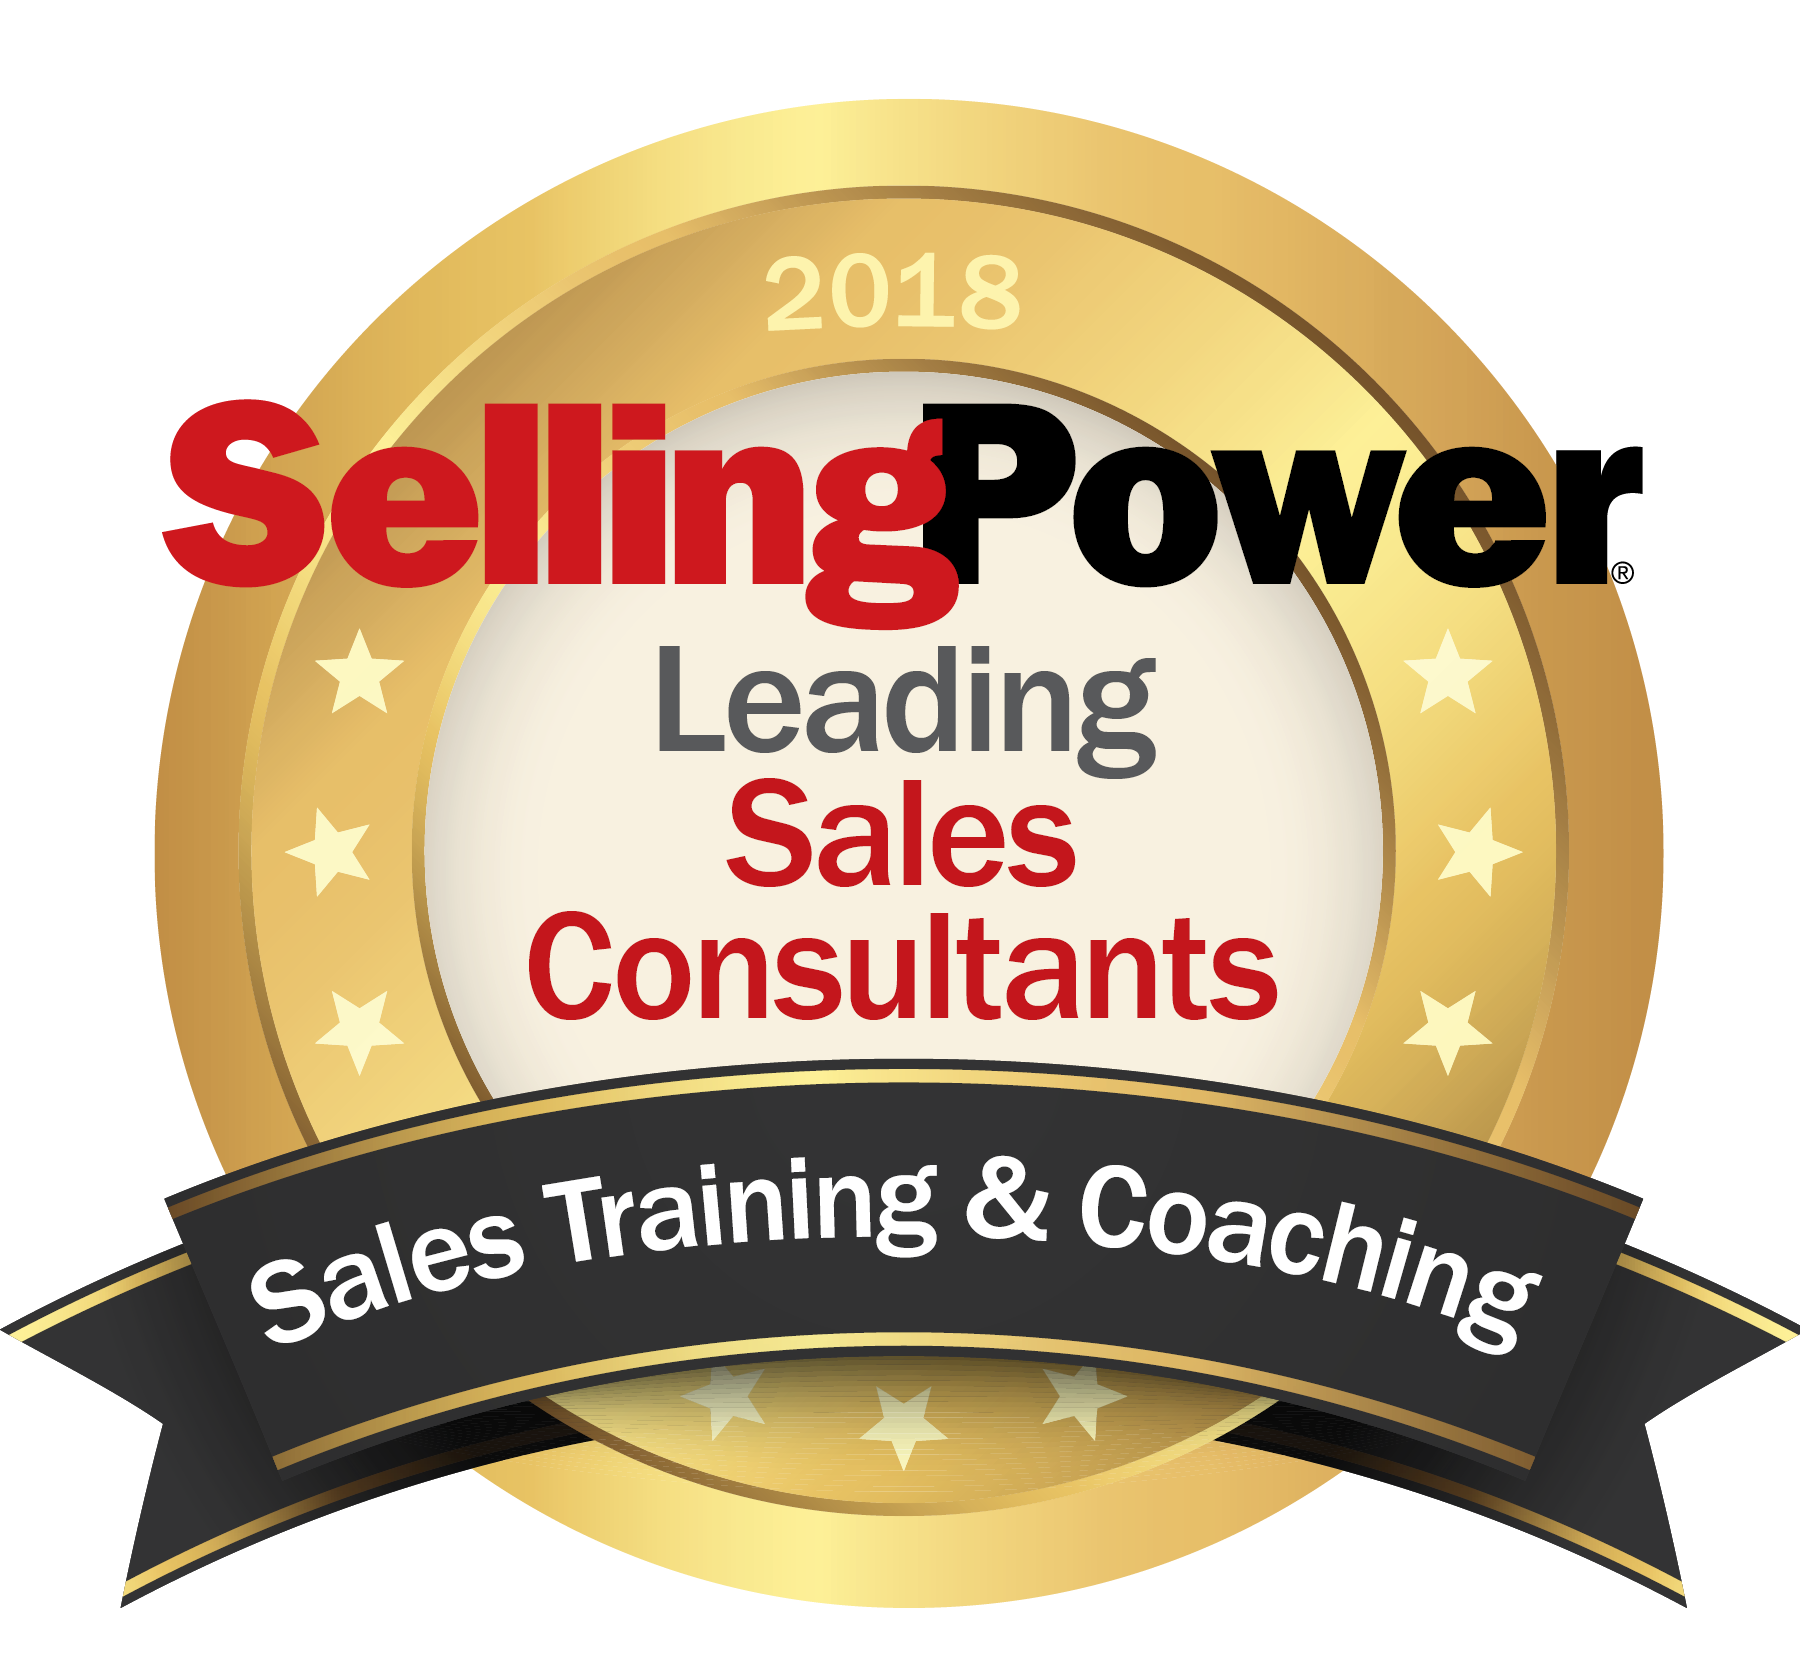 Leaading Sales Consultants 2018